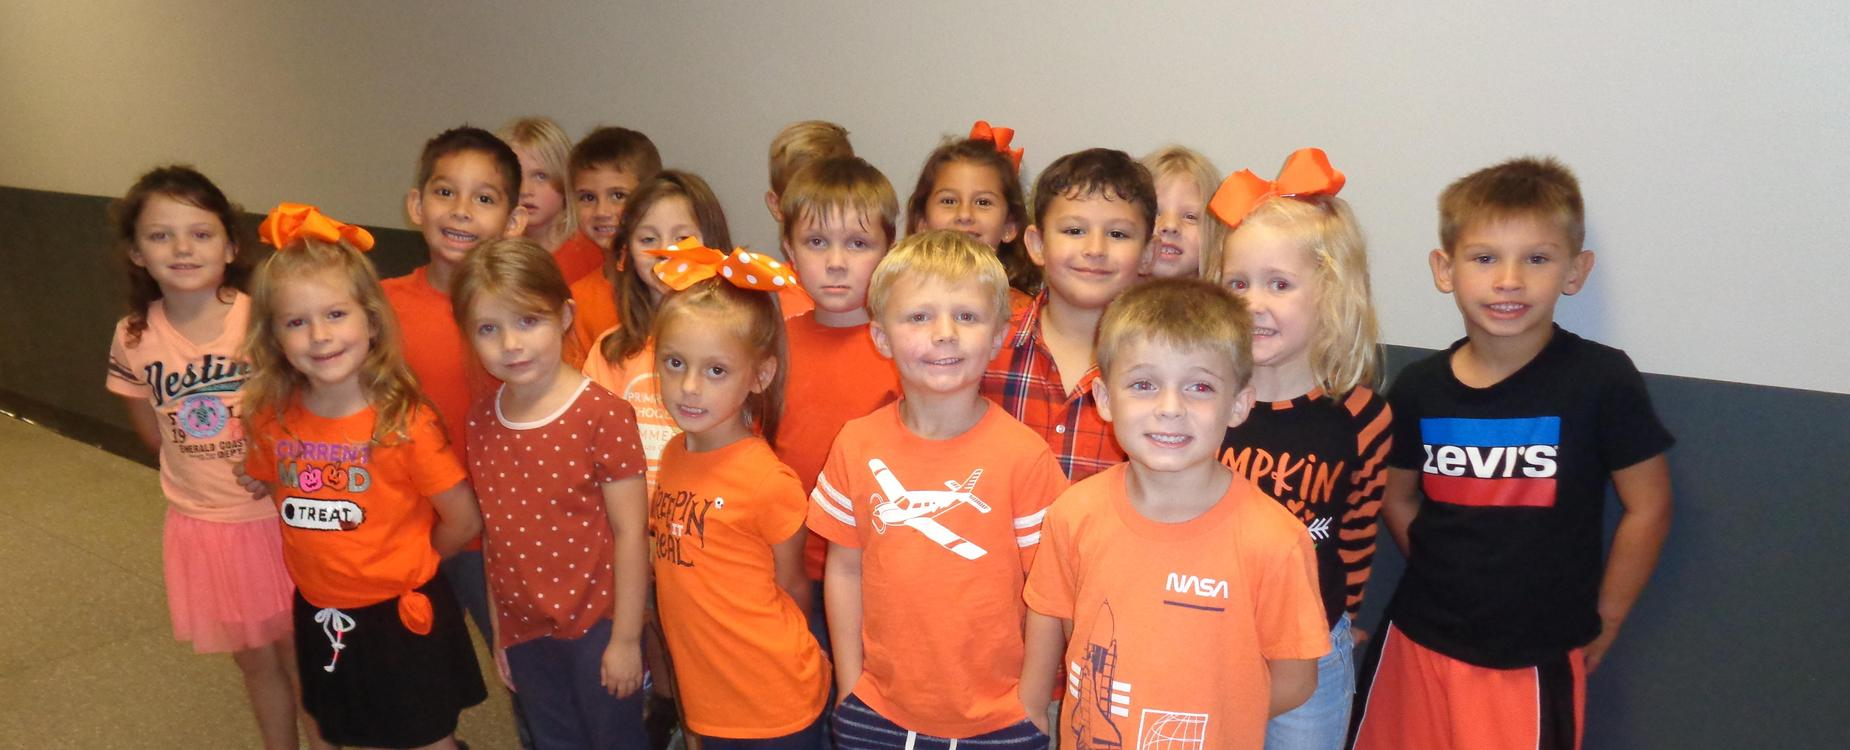 Students in orange shirts for unity